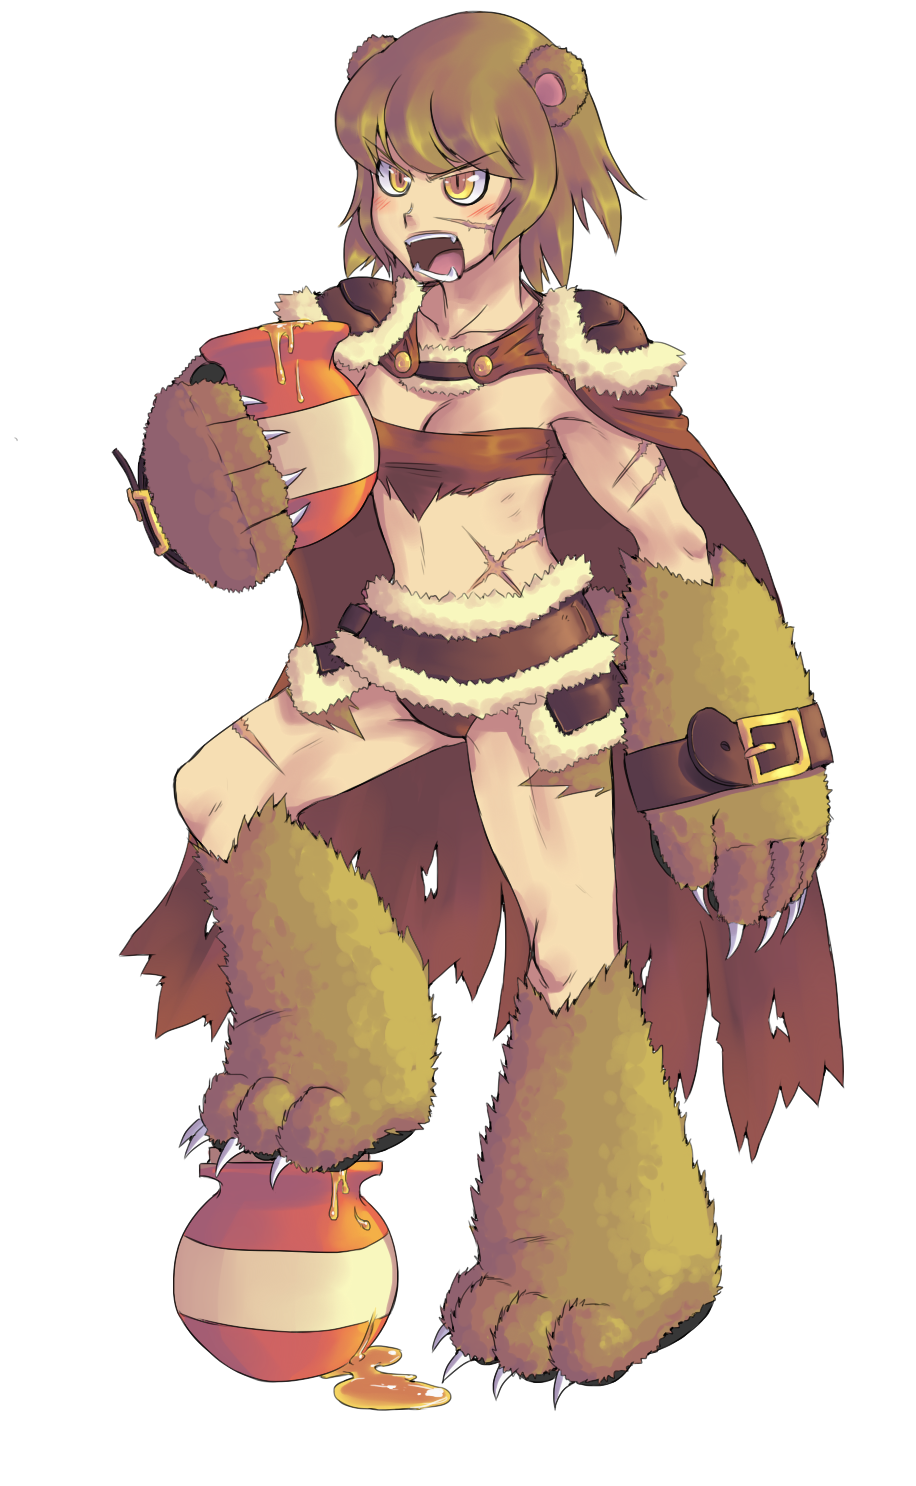 >:o 1girl :o angry animal_ears arm_belt bear_ears bear_paws blush breasts brown_hair cape claws cyzir_visheen facial_scar fangs fur_trim highres holding honey midriff monster_girl open_mouth original paws pot scar short_hair simple_background slit_pupils small_breasts solo teeth torn_cape white_background yellow_eyes